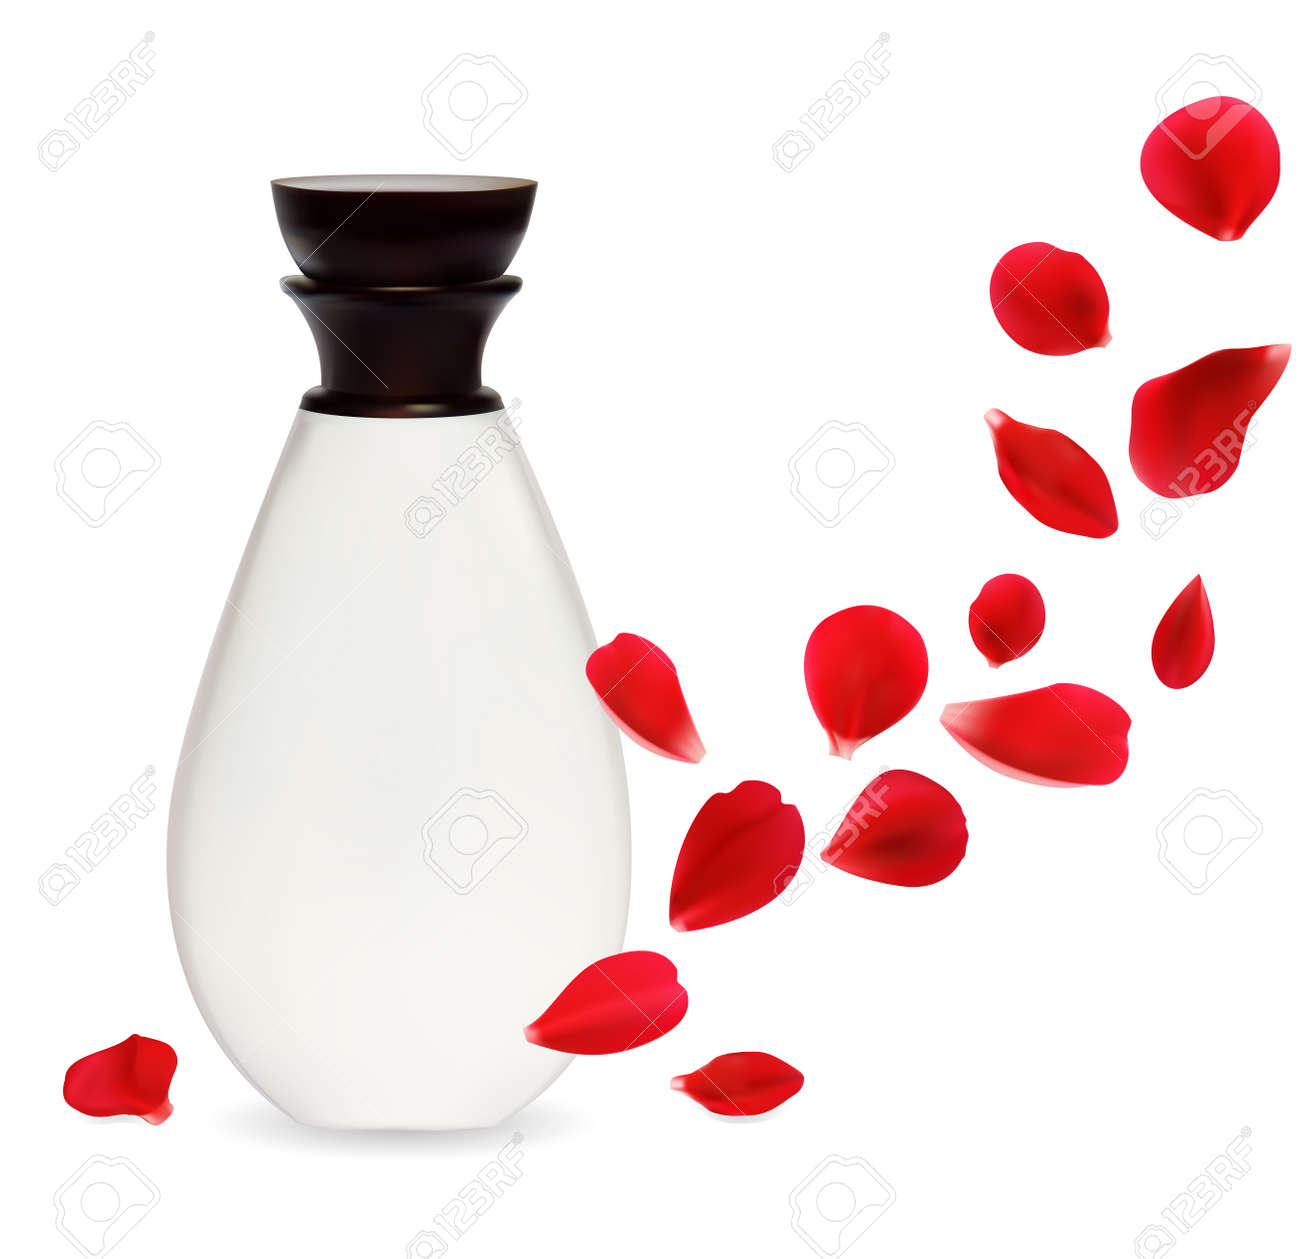 Cosmetics container isolated over white background with rose petals. Natural cosmetics concept. Stock Vector - 12497415